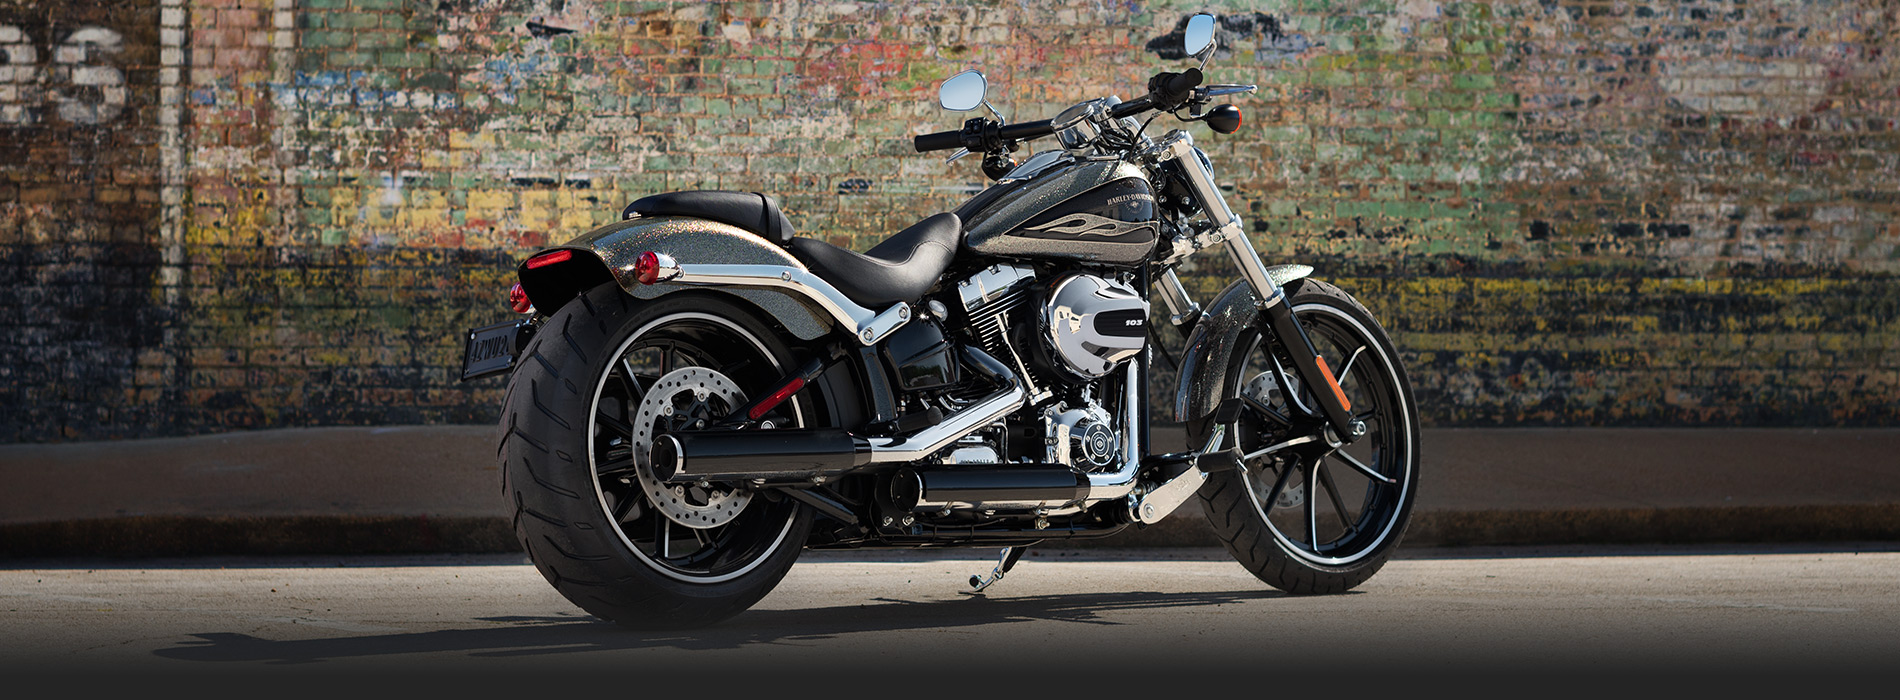 Amazing Harley-Davidson Breakout Pictures & Backgrounds